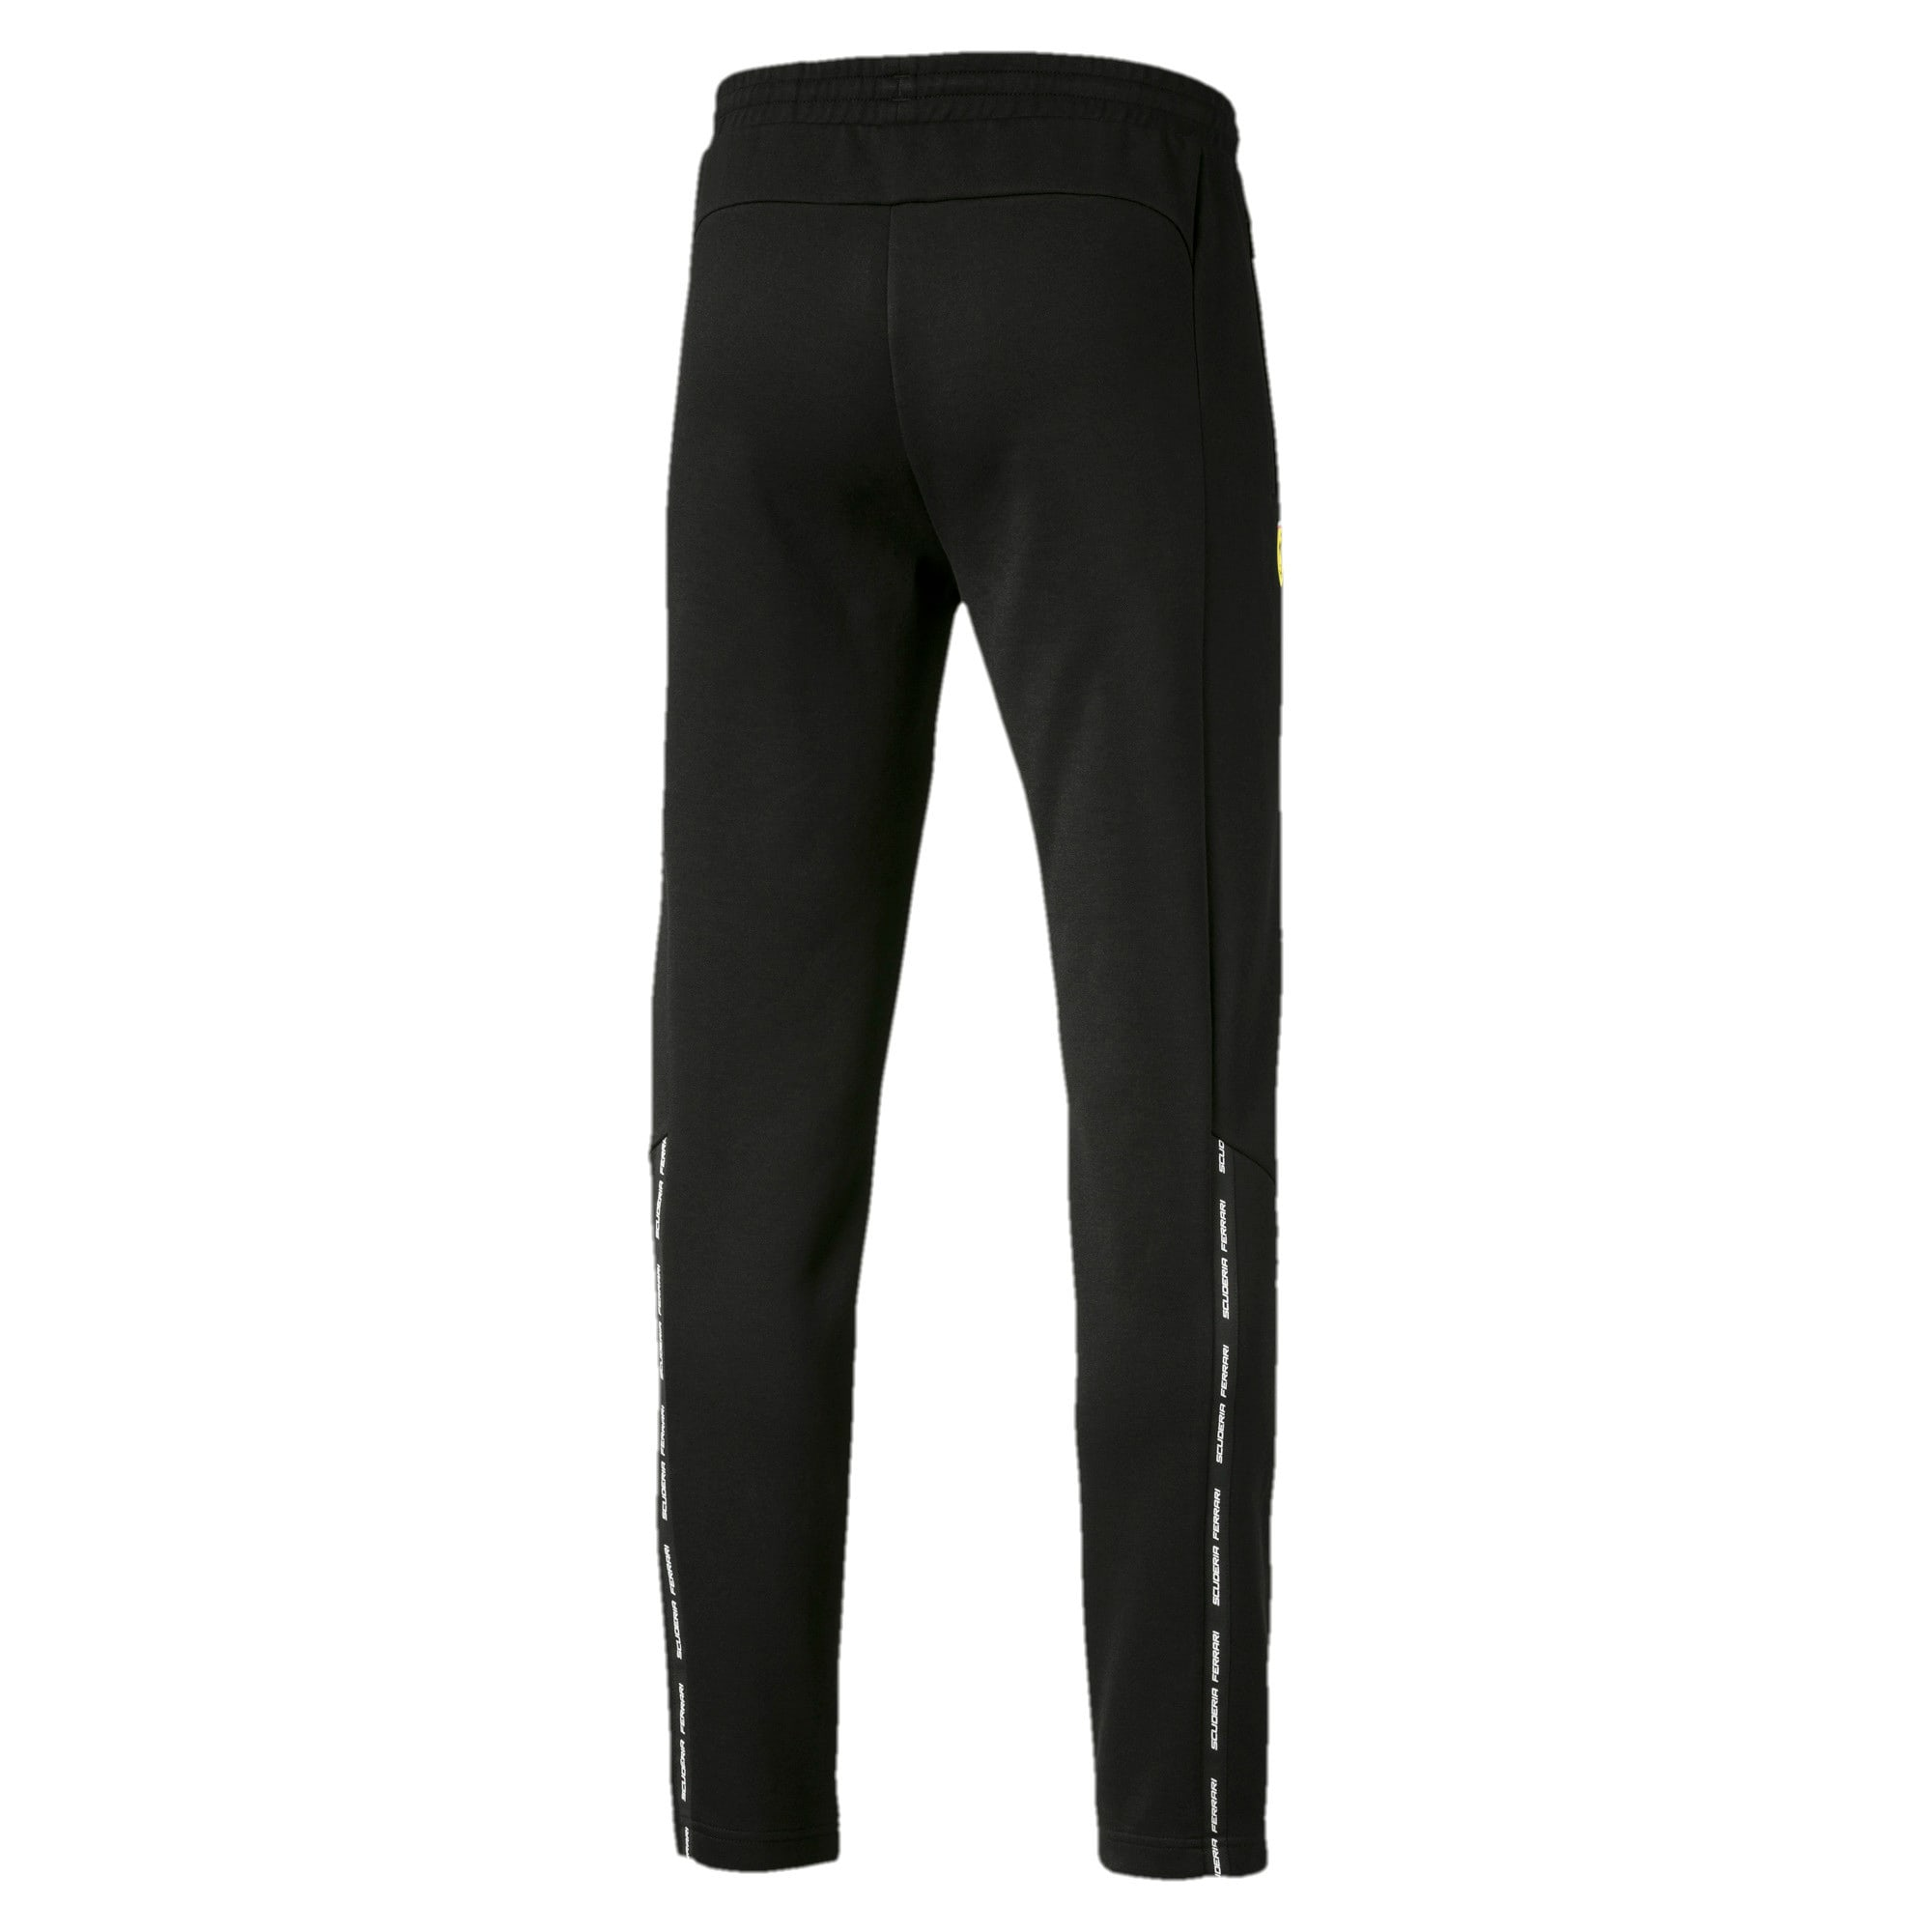 Thumbnail 5 of Ferrari Slim Men's Sweatpants, Puma Black, medium